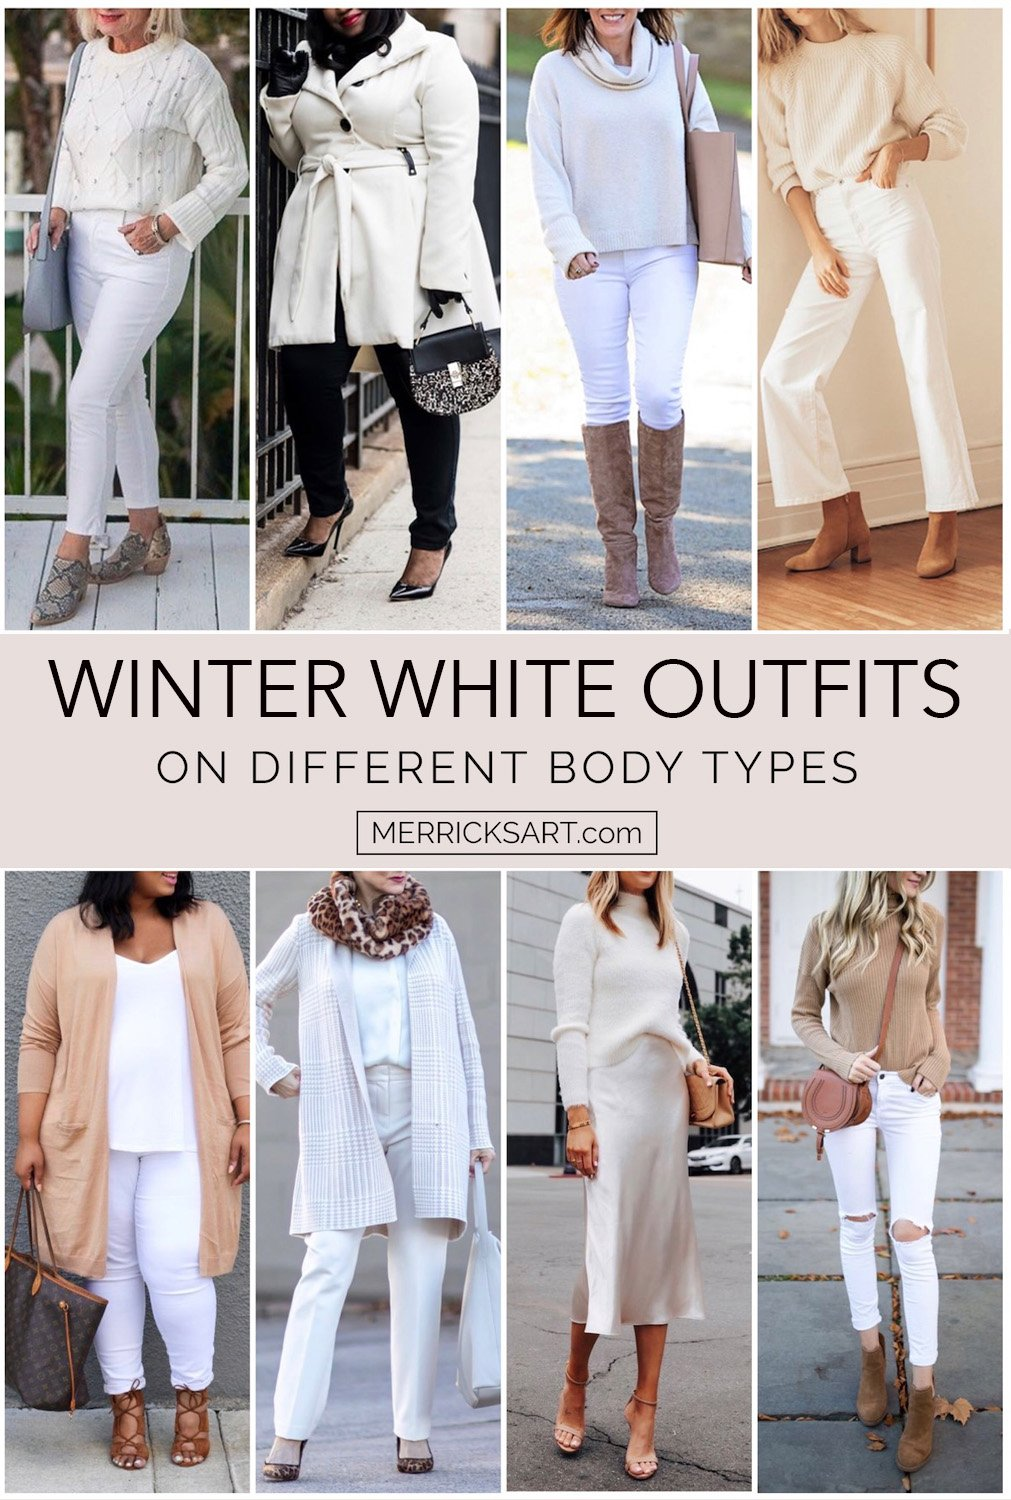 winter whites outfits on different ages and body types